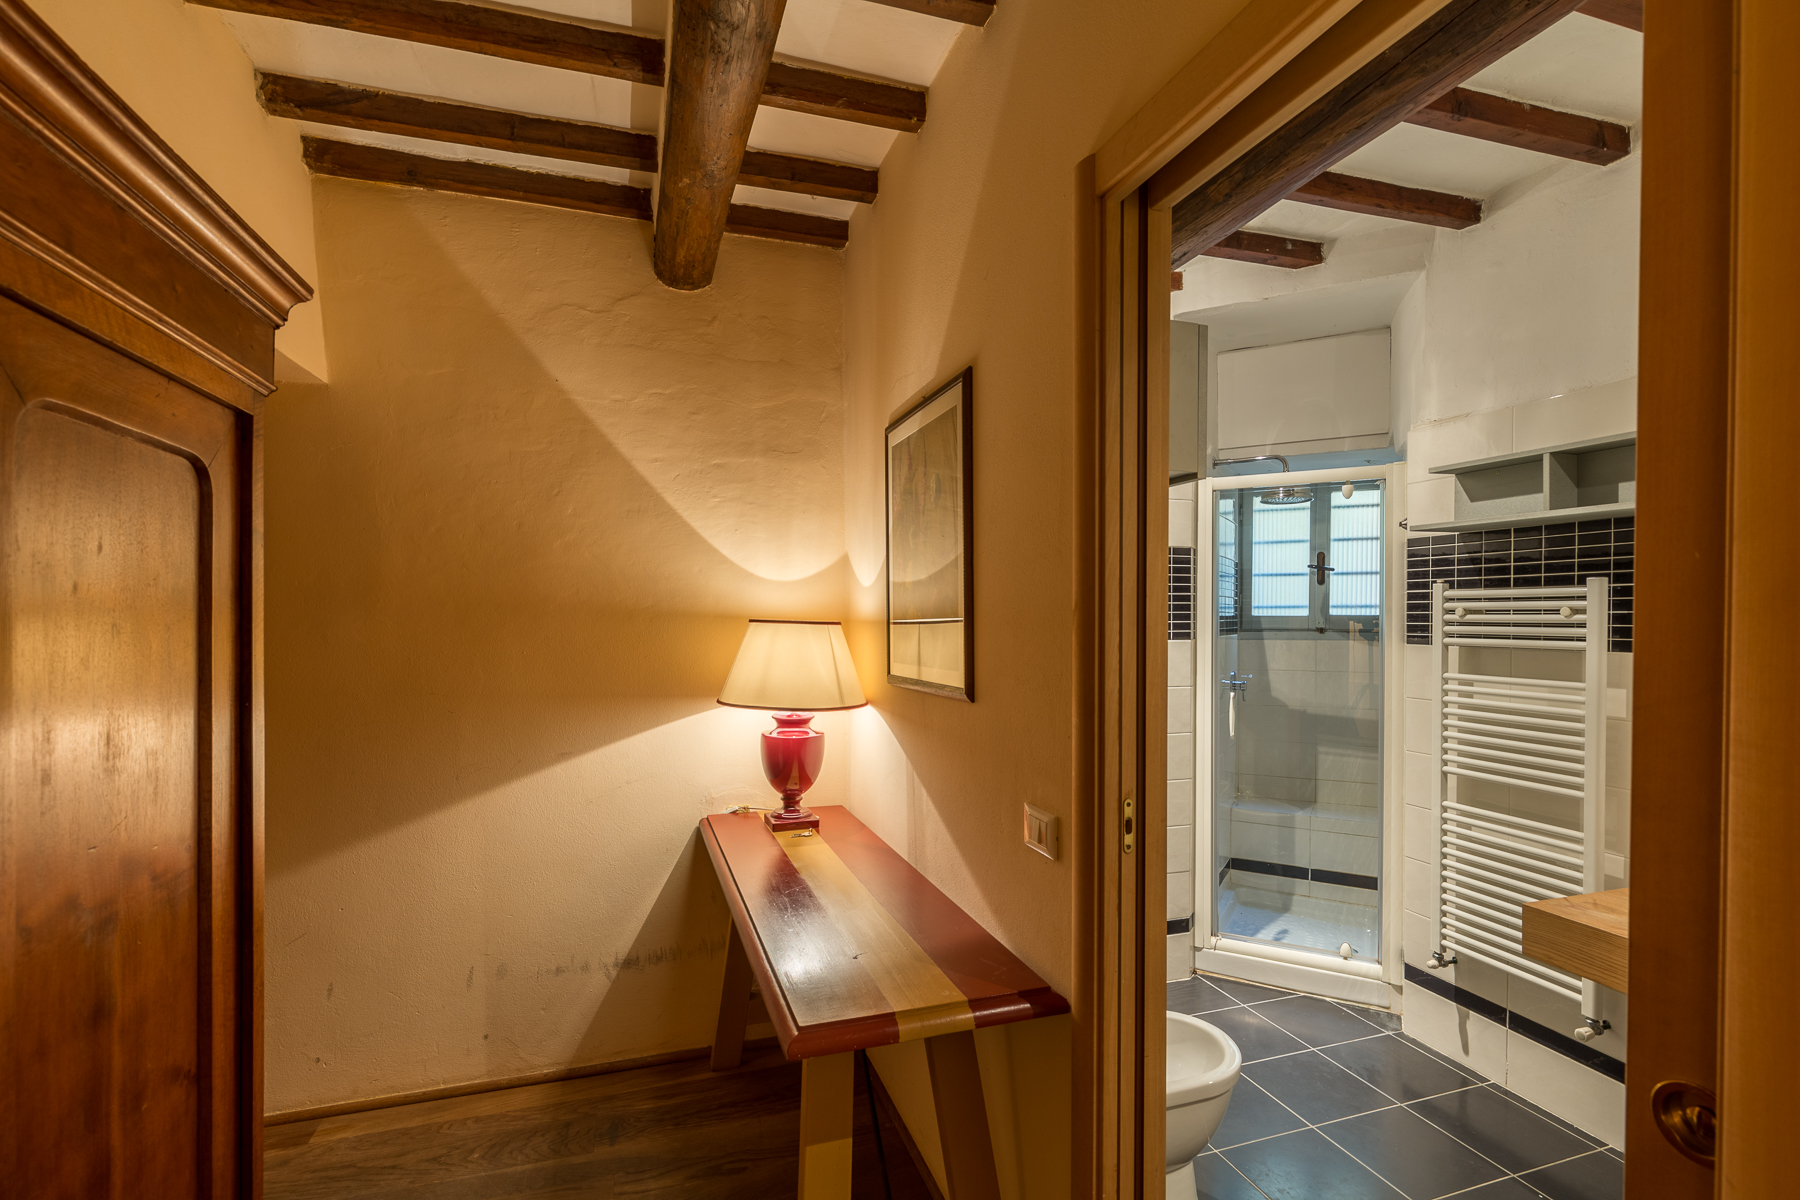 Additional photo for property listing at Splendid apartment with garden Via San Giovanni Firenze, Florence 50100 Italia